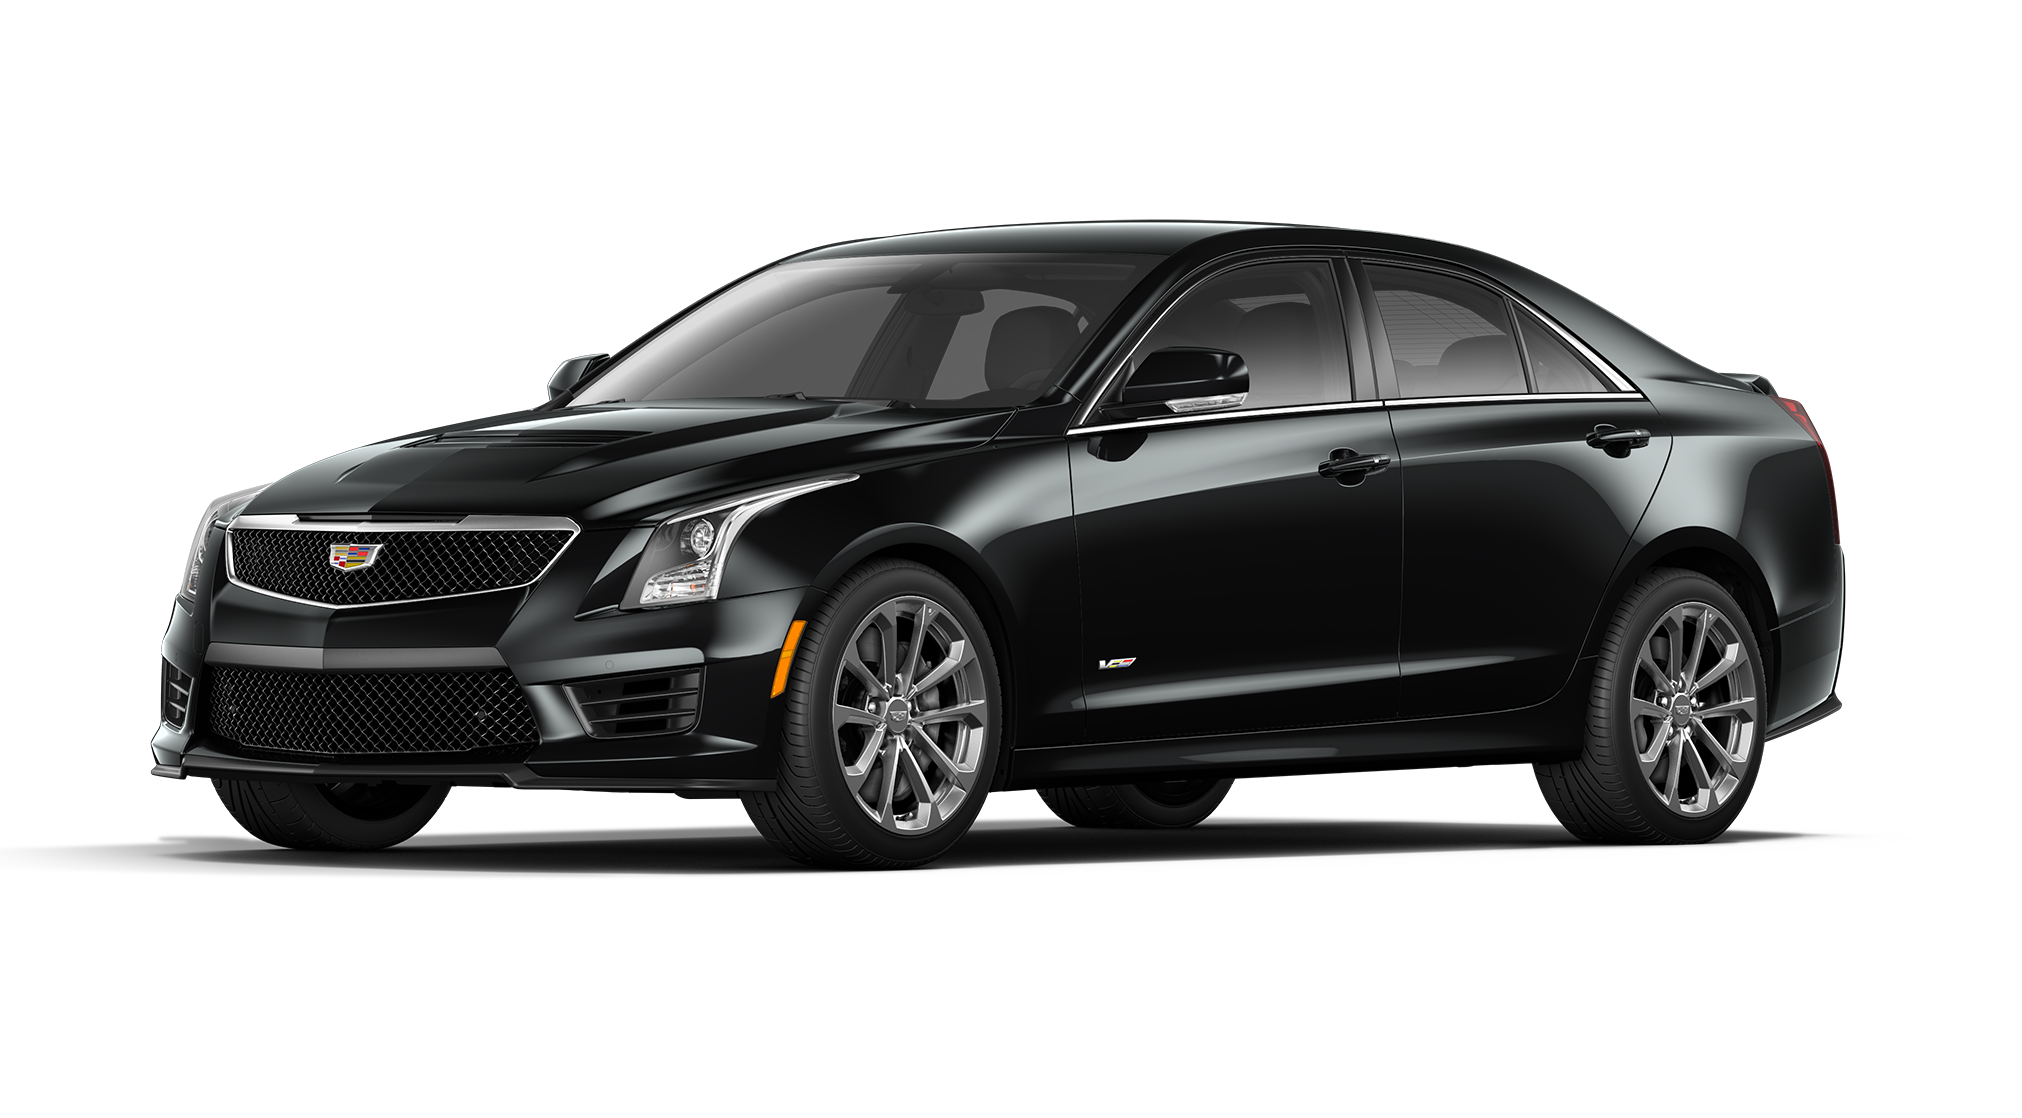 2017 cadillac ats v winnipeg ats v coupe details specs gauthier. Black Bedroom Furniture Sets. Home Design Ideas